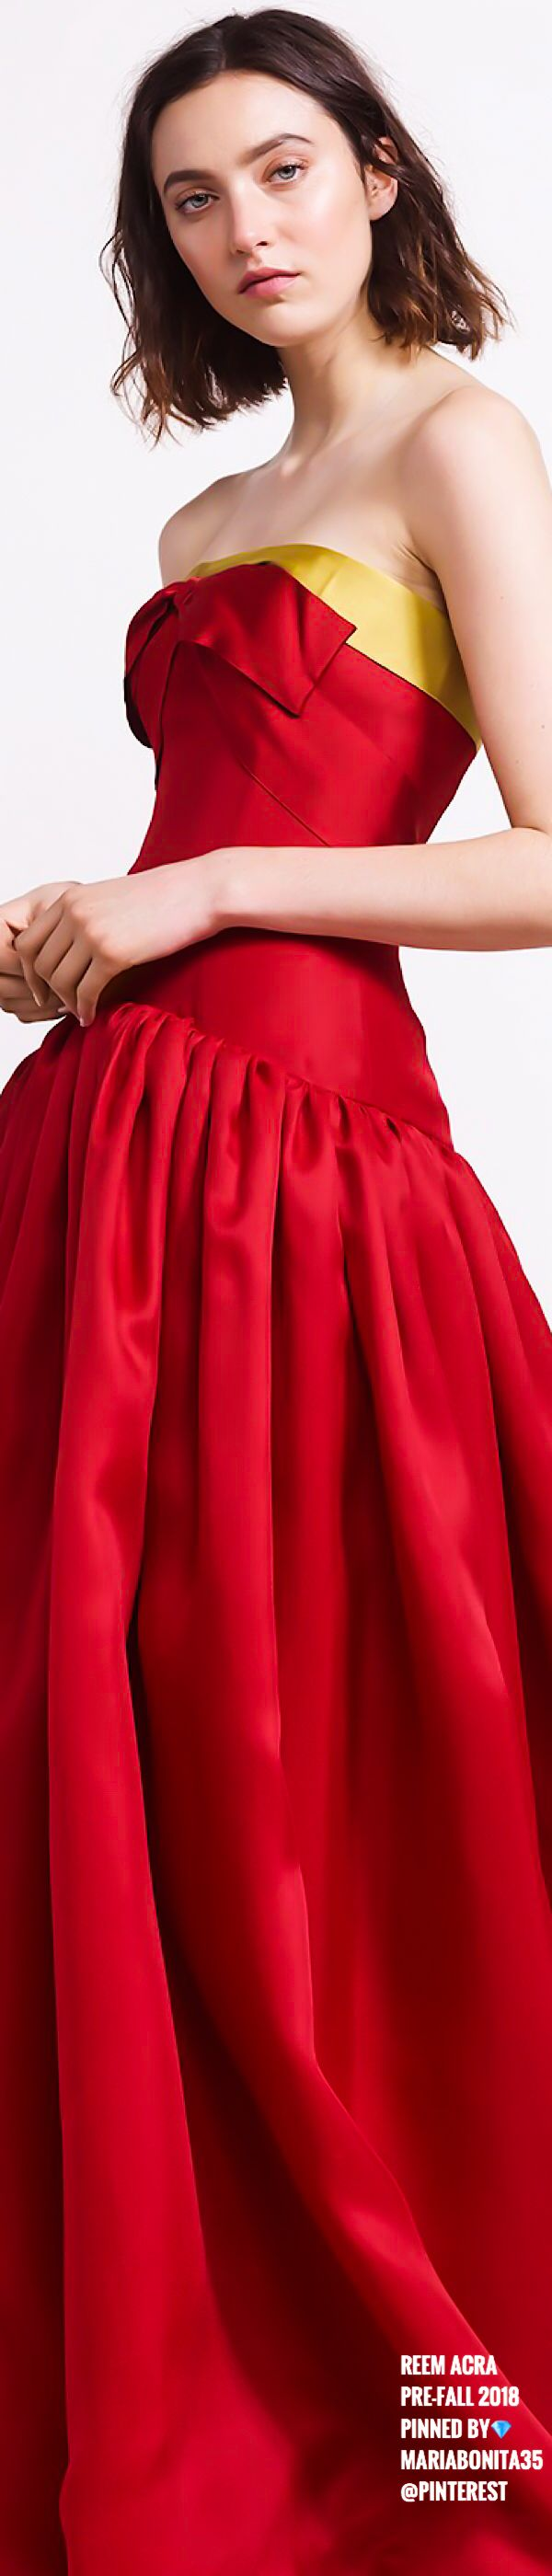 Reem Acra | Clothes | Pinterest | Fashion women, Red fashion and Gowns